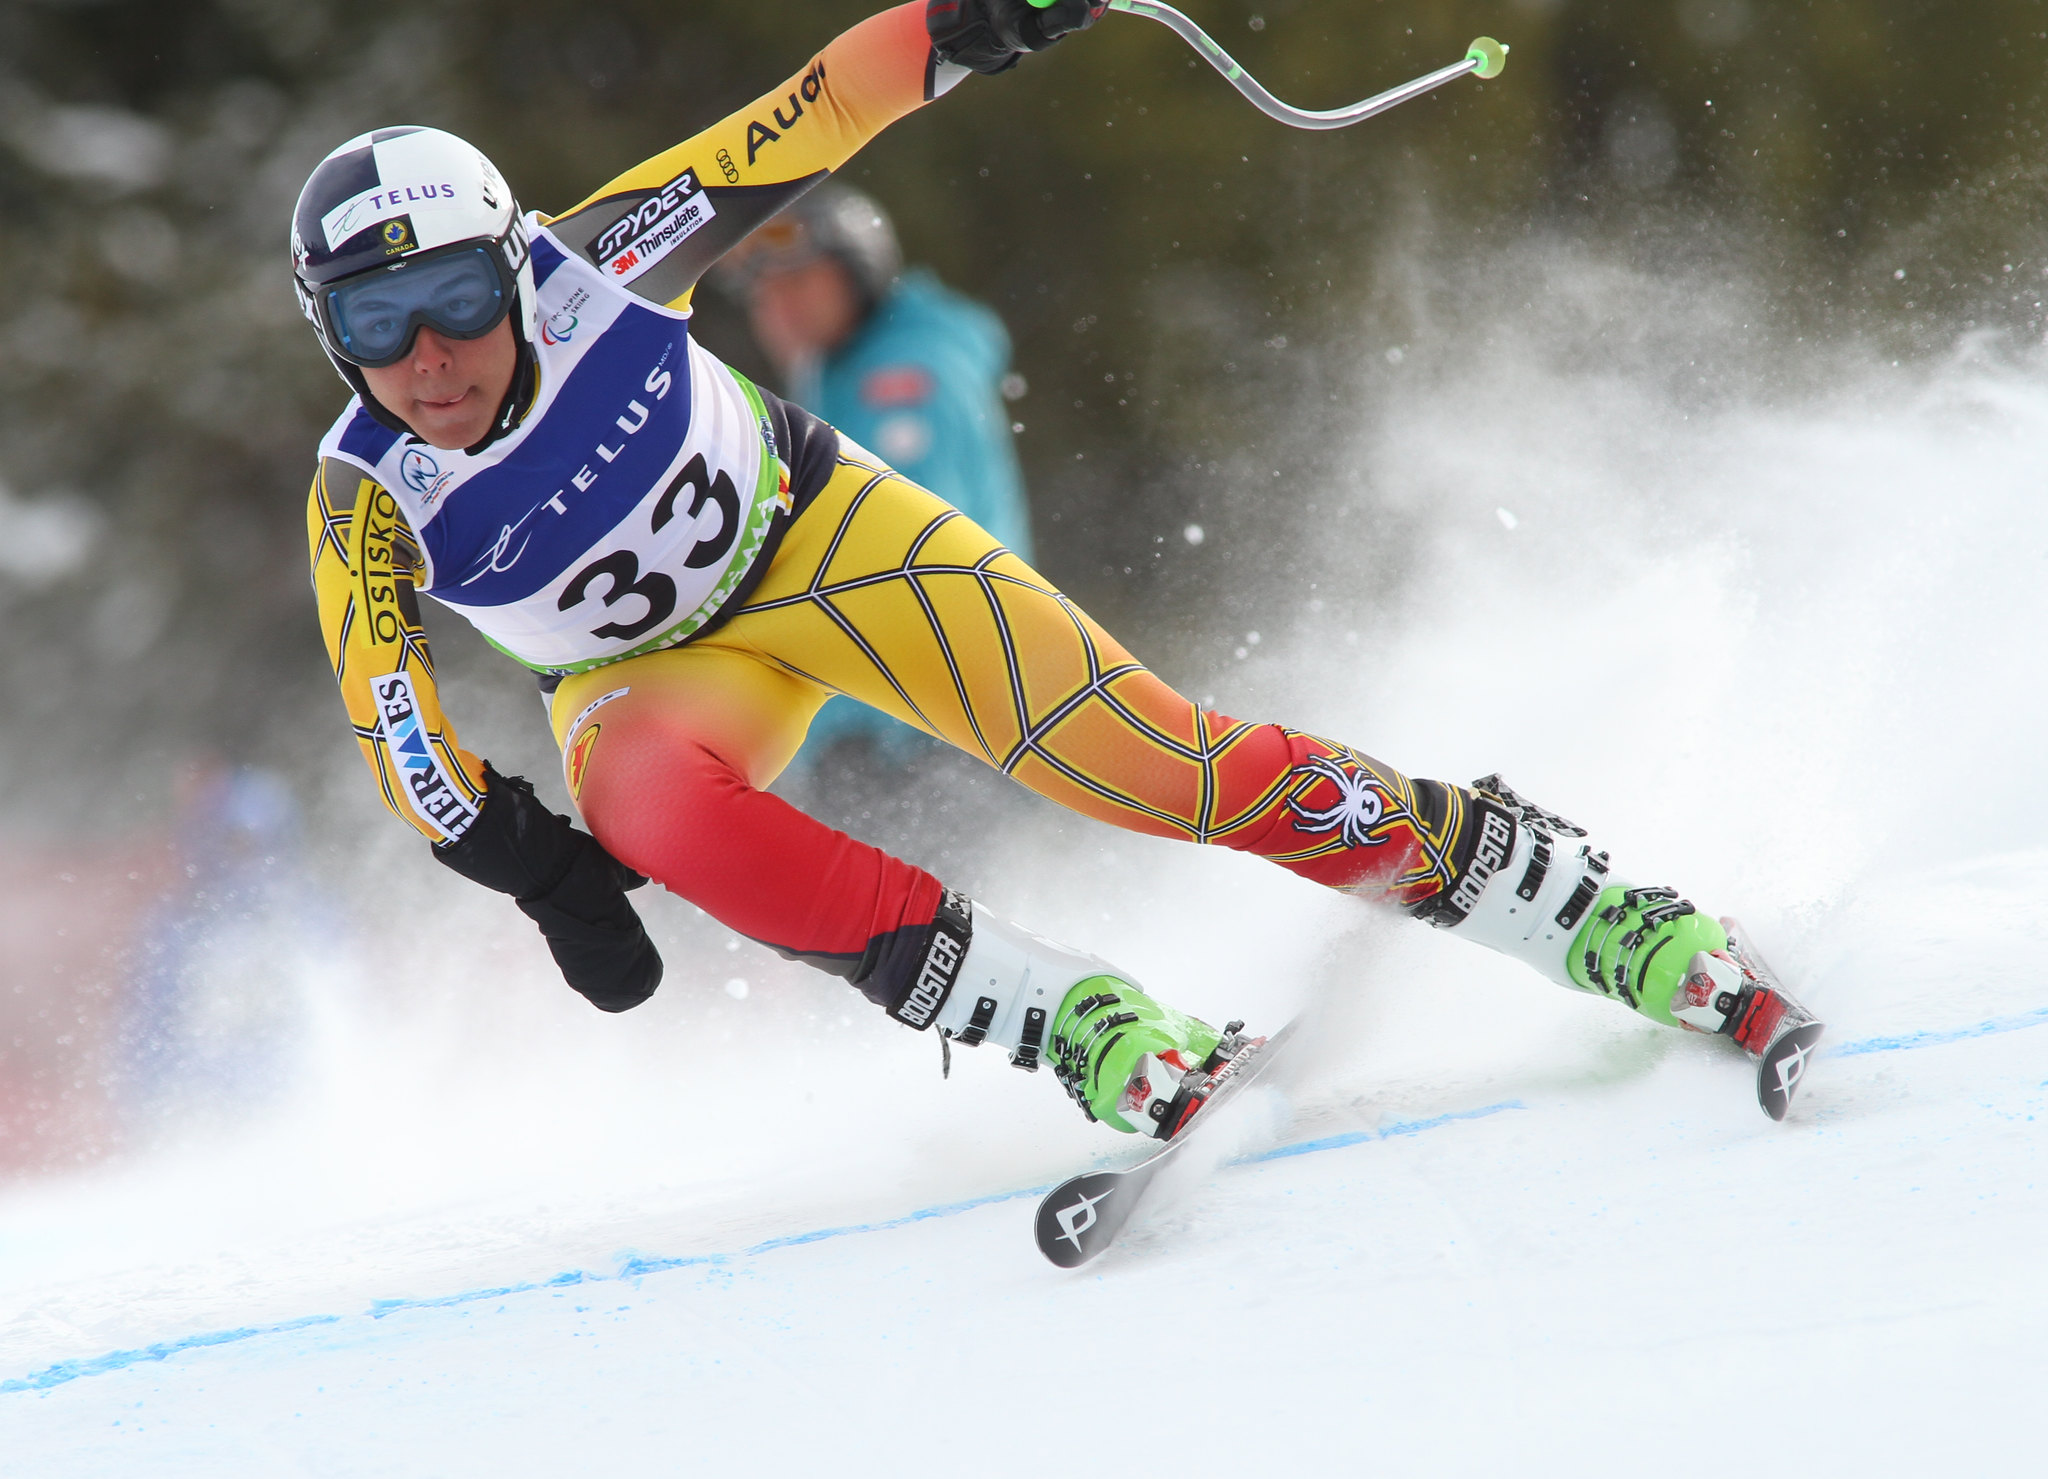 Kirk Schornstein in action in an IPC World Cup super-G in Panorama, B.C.